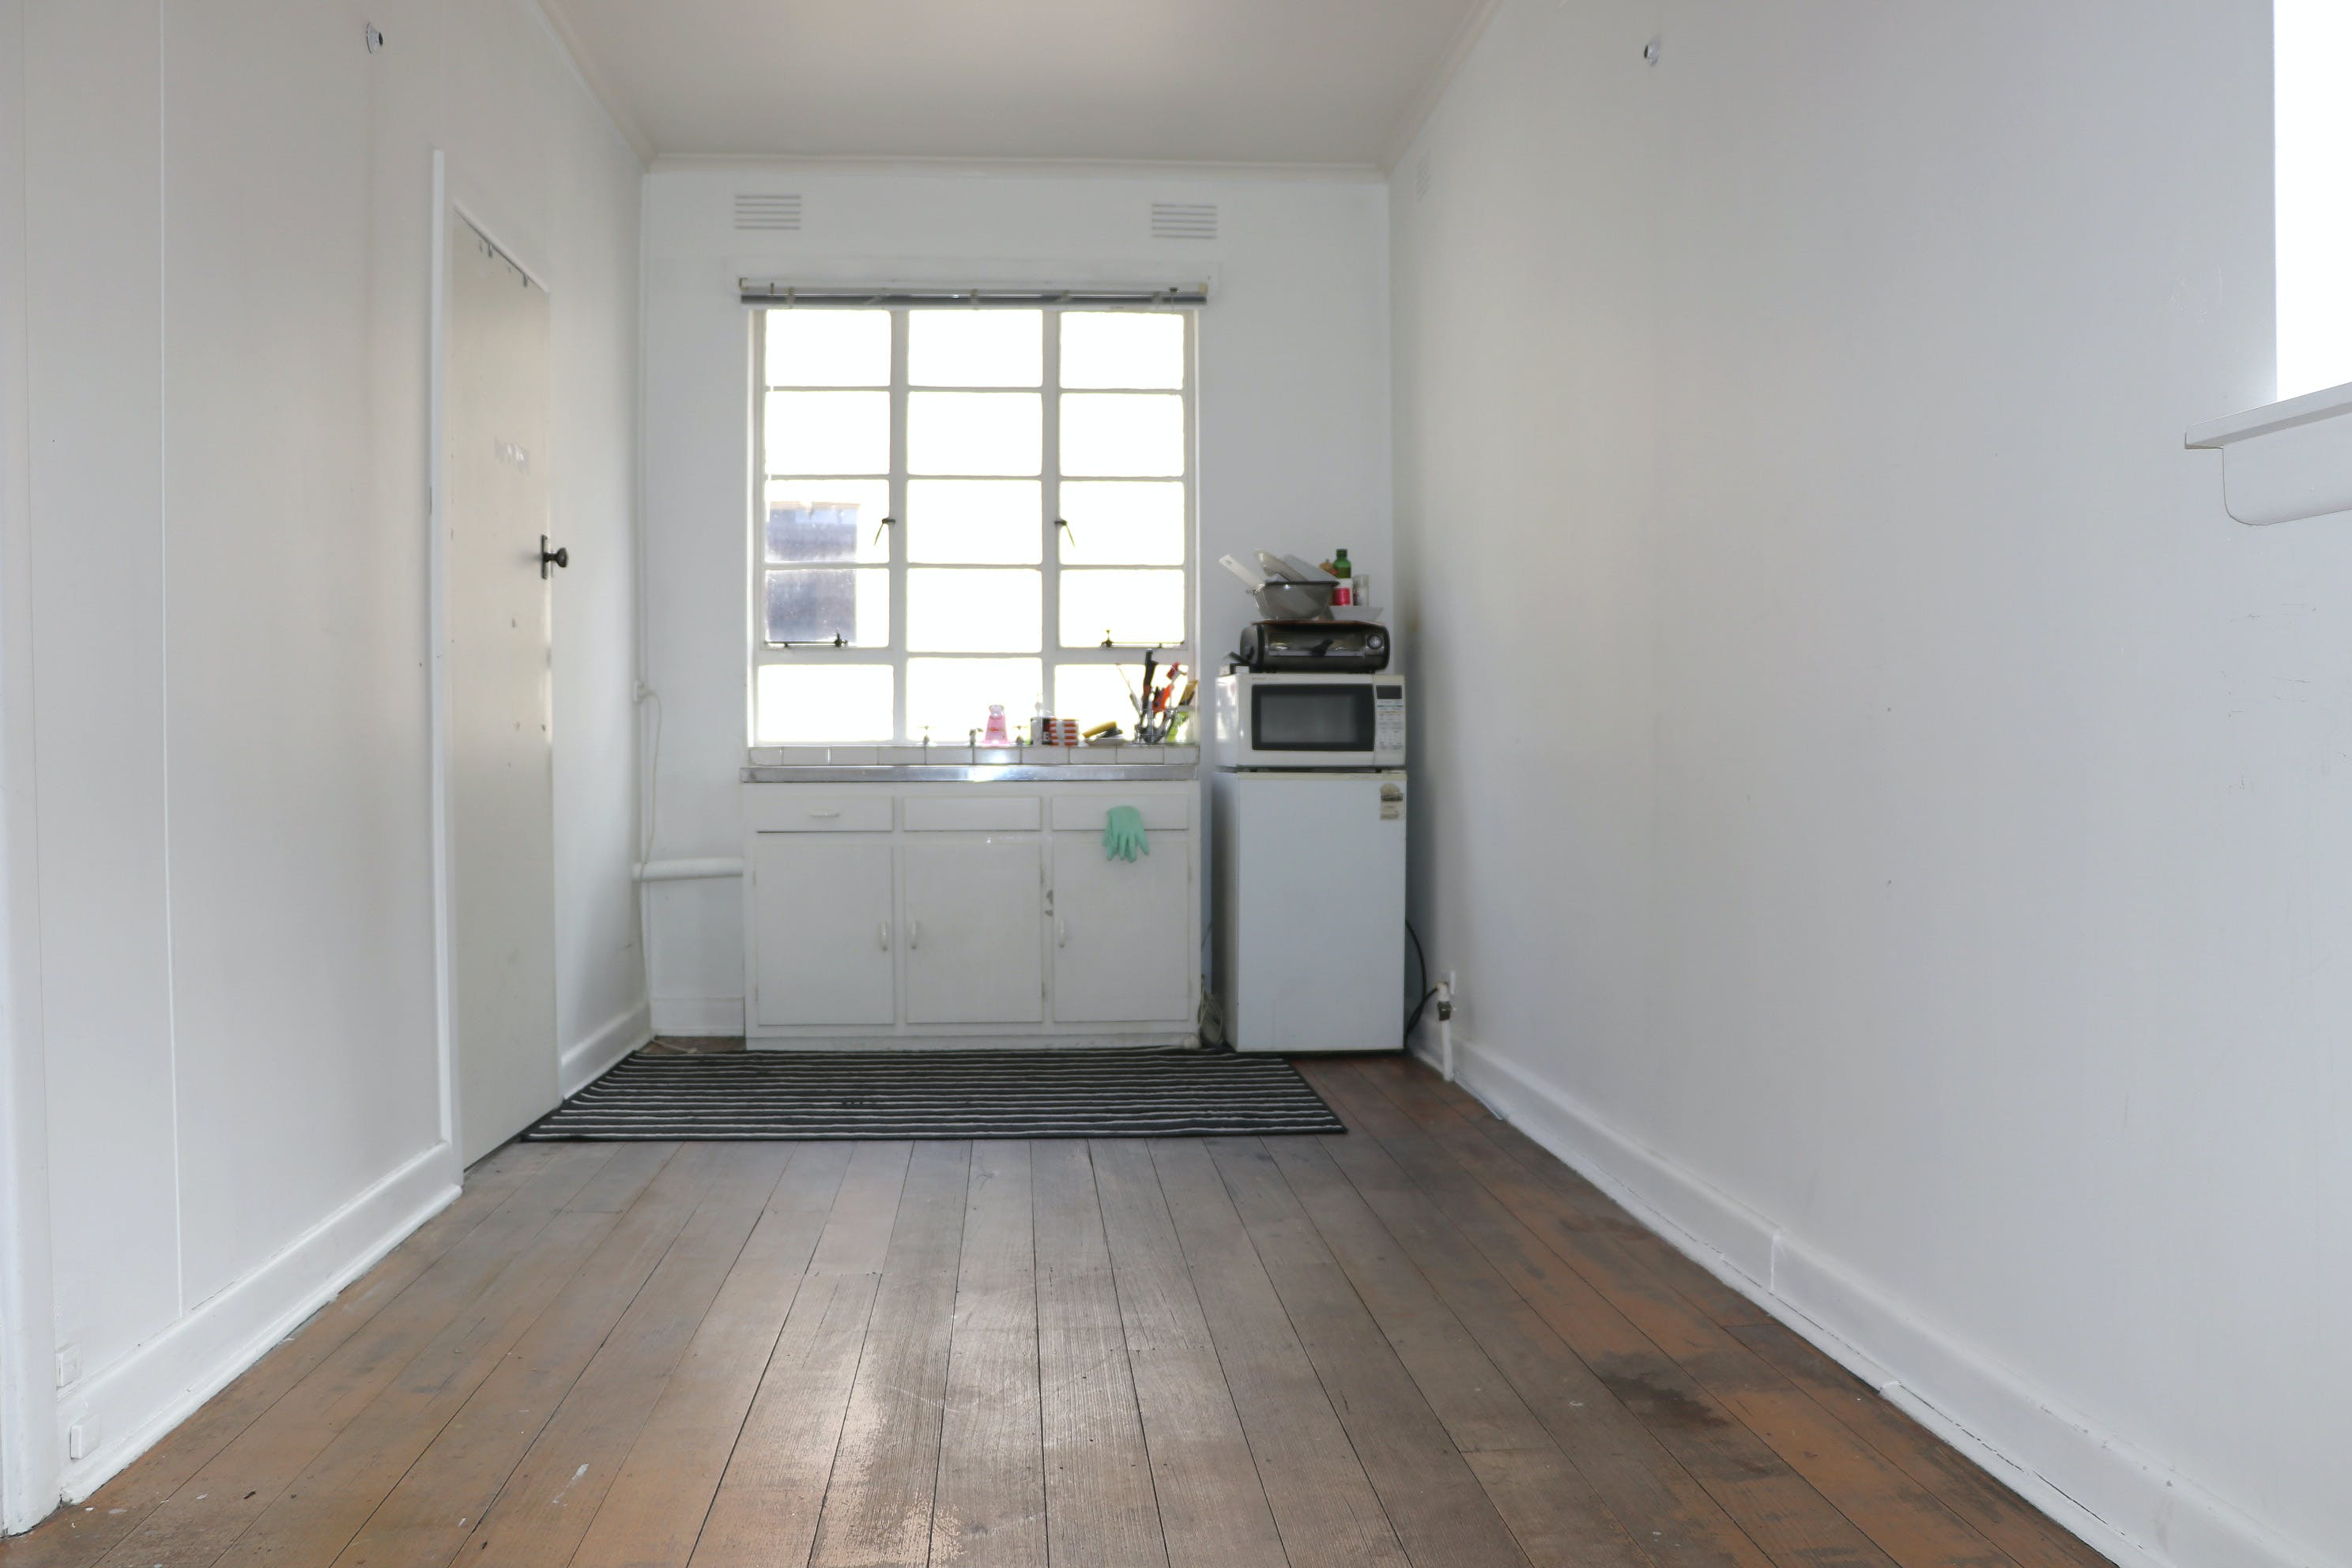 3 Rooms 30 sq meters, multi-use area at The Guitar Colonel, image 1